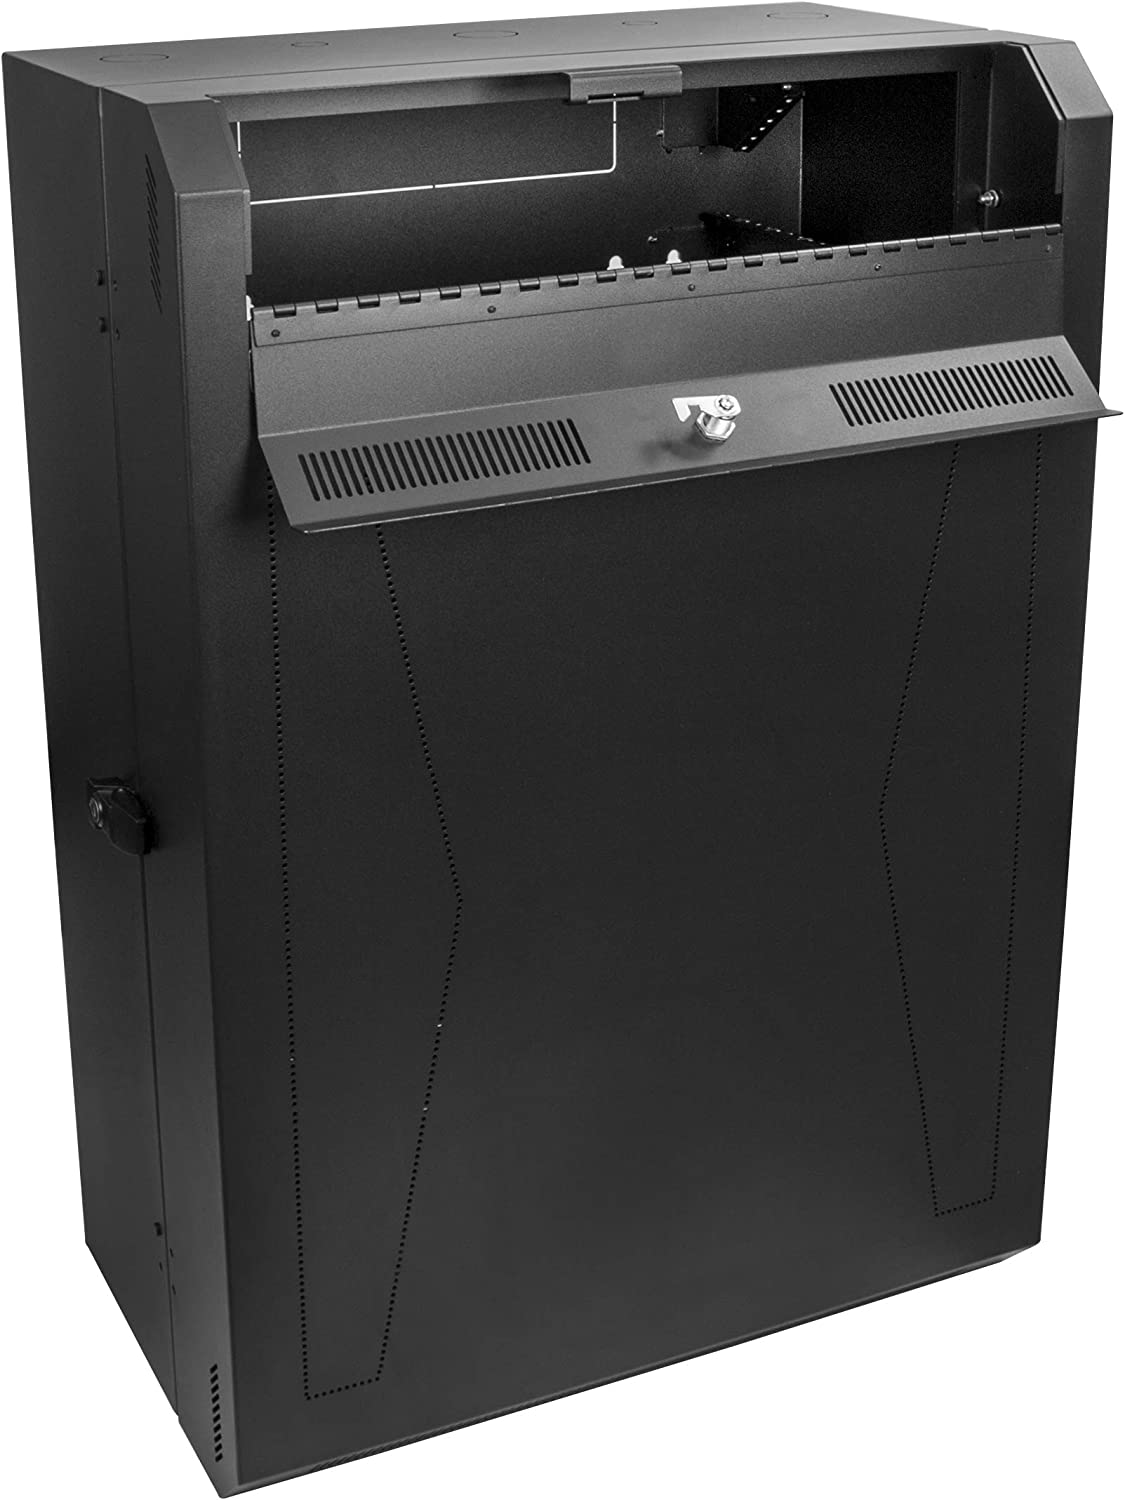 StarTech.com RK619WALLV 6U 19-Inch Steel Vertical Rack and Wall Mountable Server